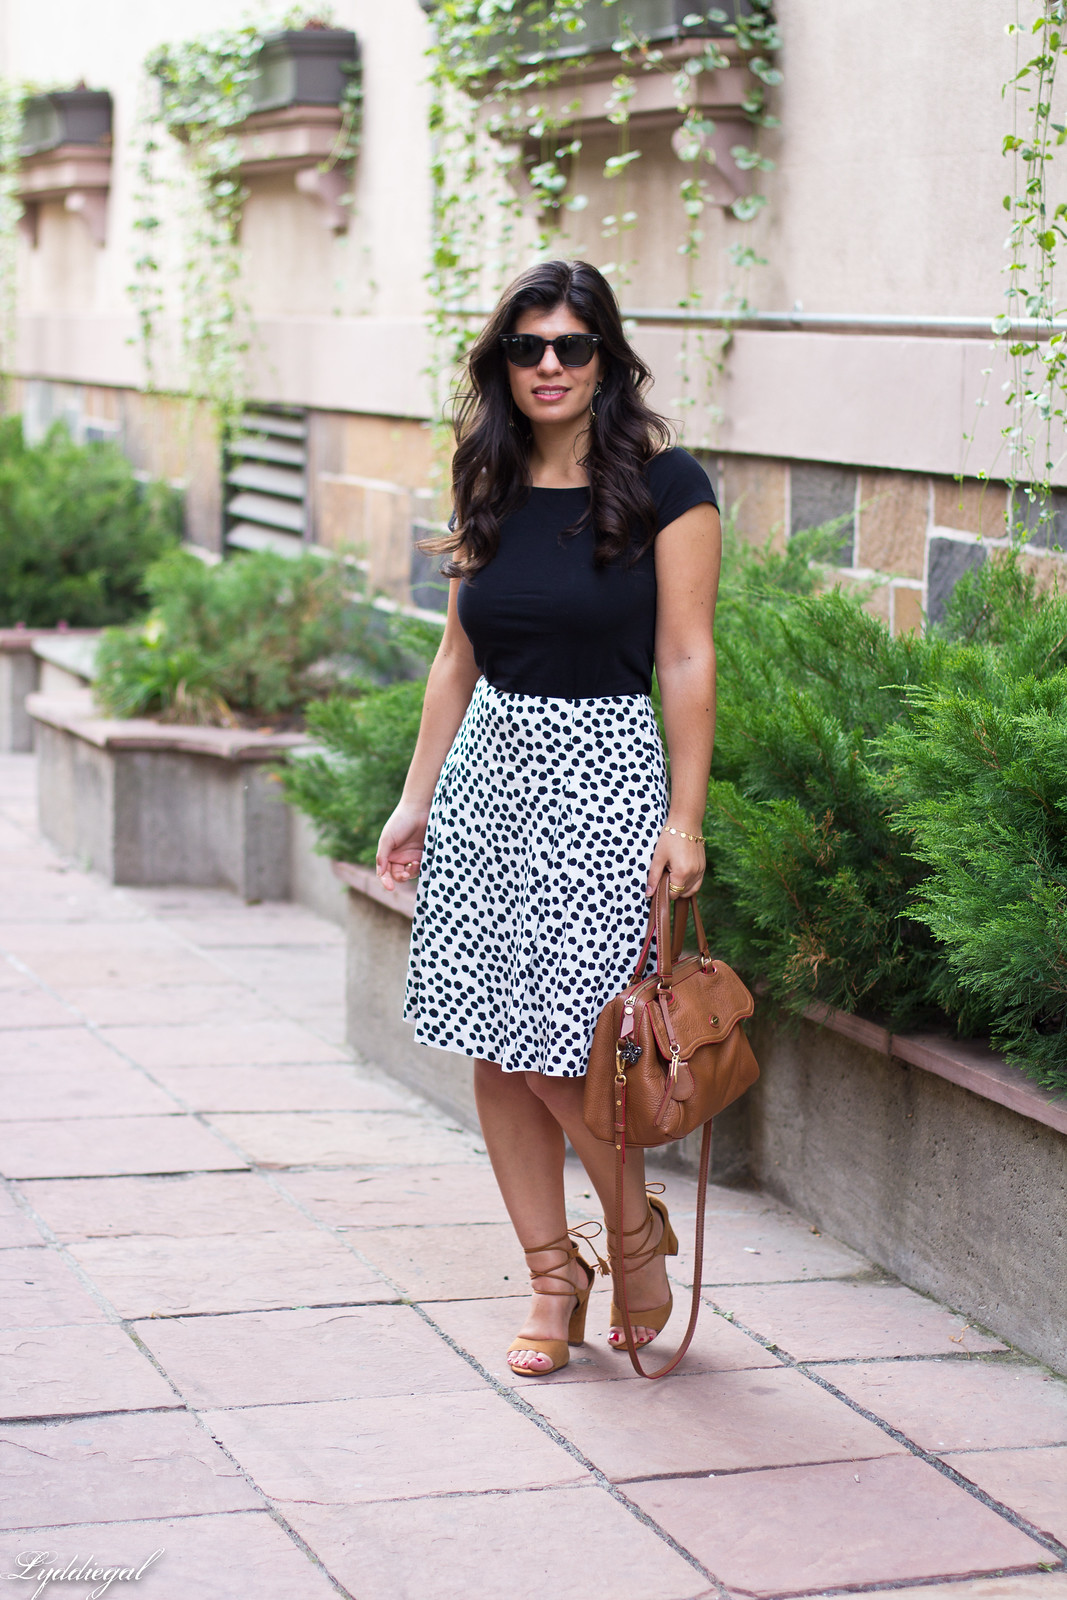 dalmatian print skirt, off the shoulder tee, lace up heels-4.jpg